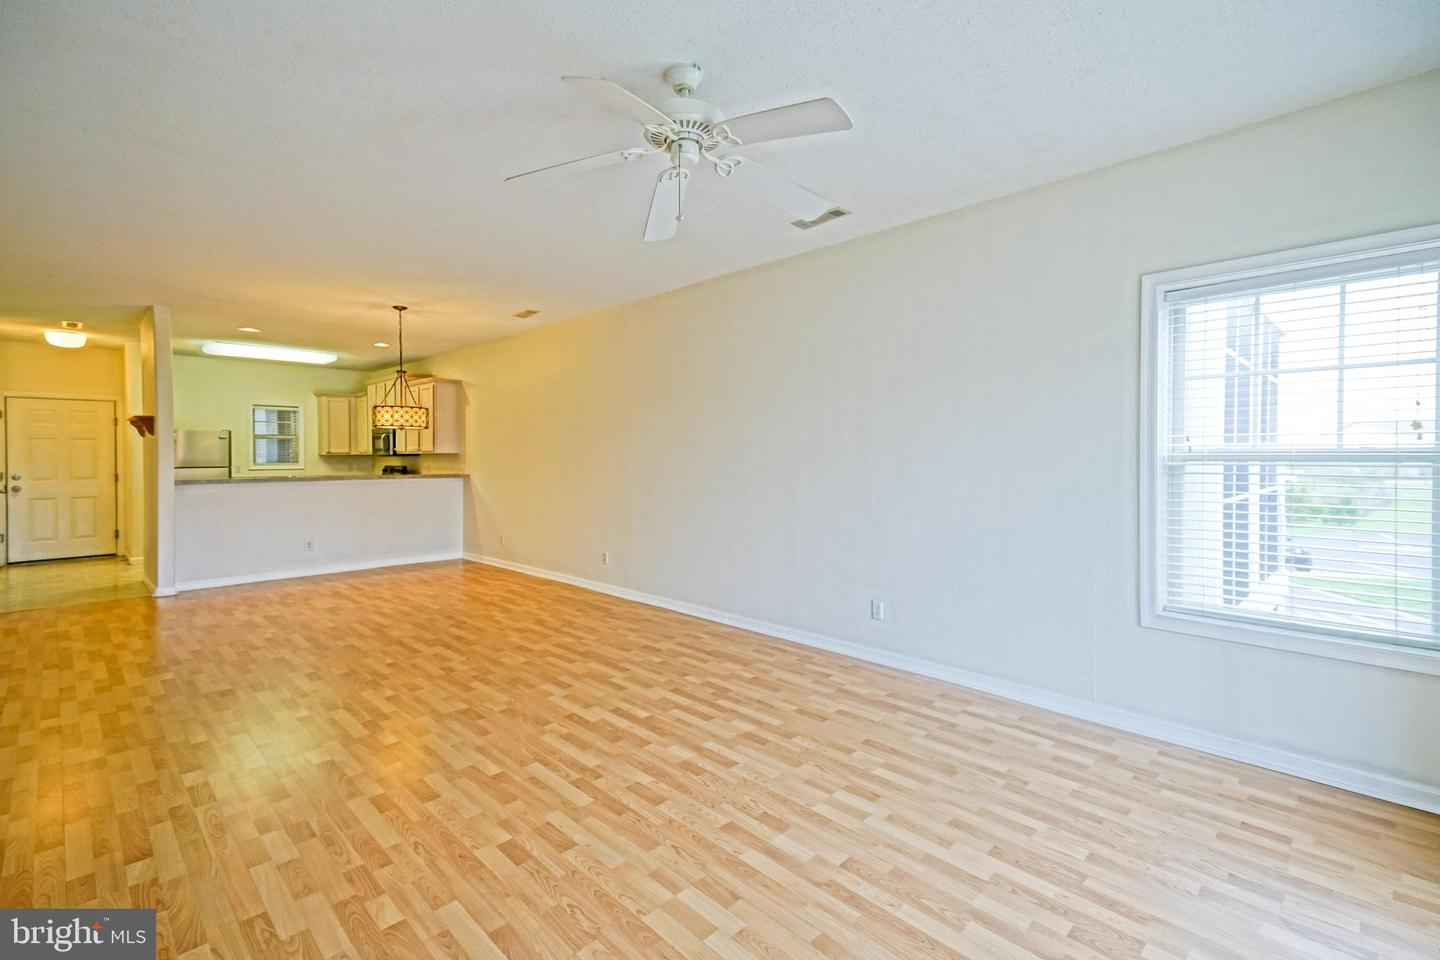 DESU139032-301664482829-2019-06-24-14-51-57 33156 N Village Loop #4202 | Lewes, DE Real Estate For Sale | MLS# Desu139032  - Lee Ann Group